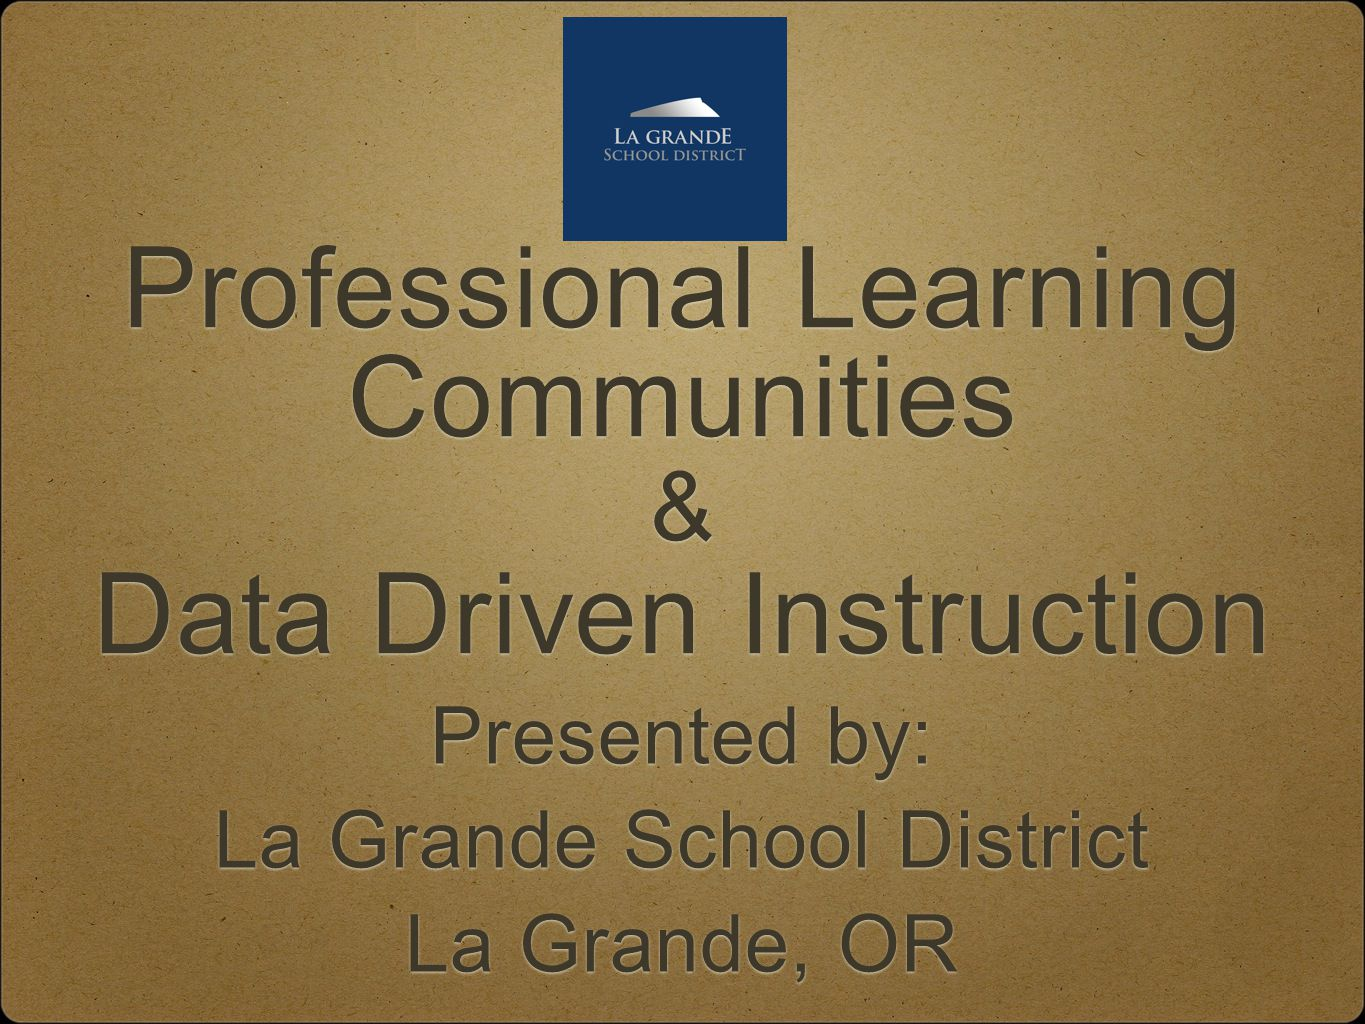 Professional Learning Communities & Data Driven Instruction Professional Learning Communities & Data Driven Instruction Presented by: La Grande School District La Grande, OR Presented by: La Grande School District La Grande, OR